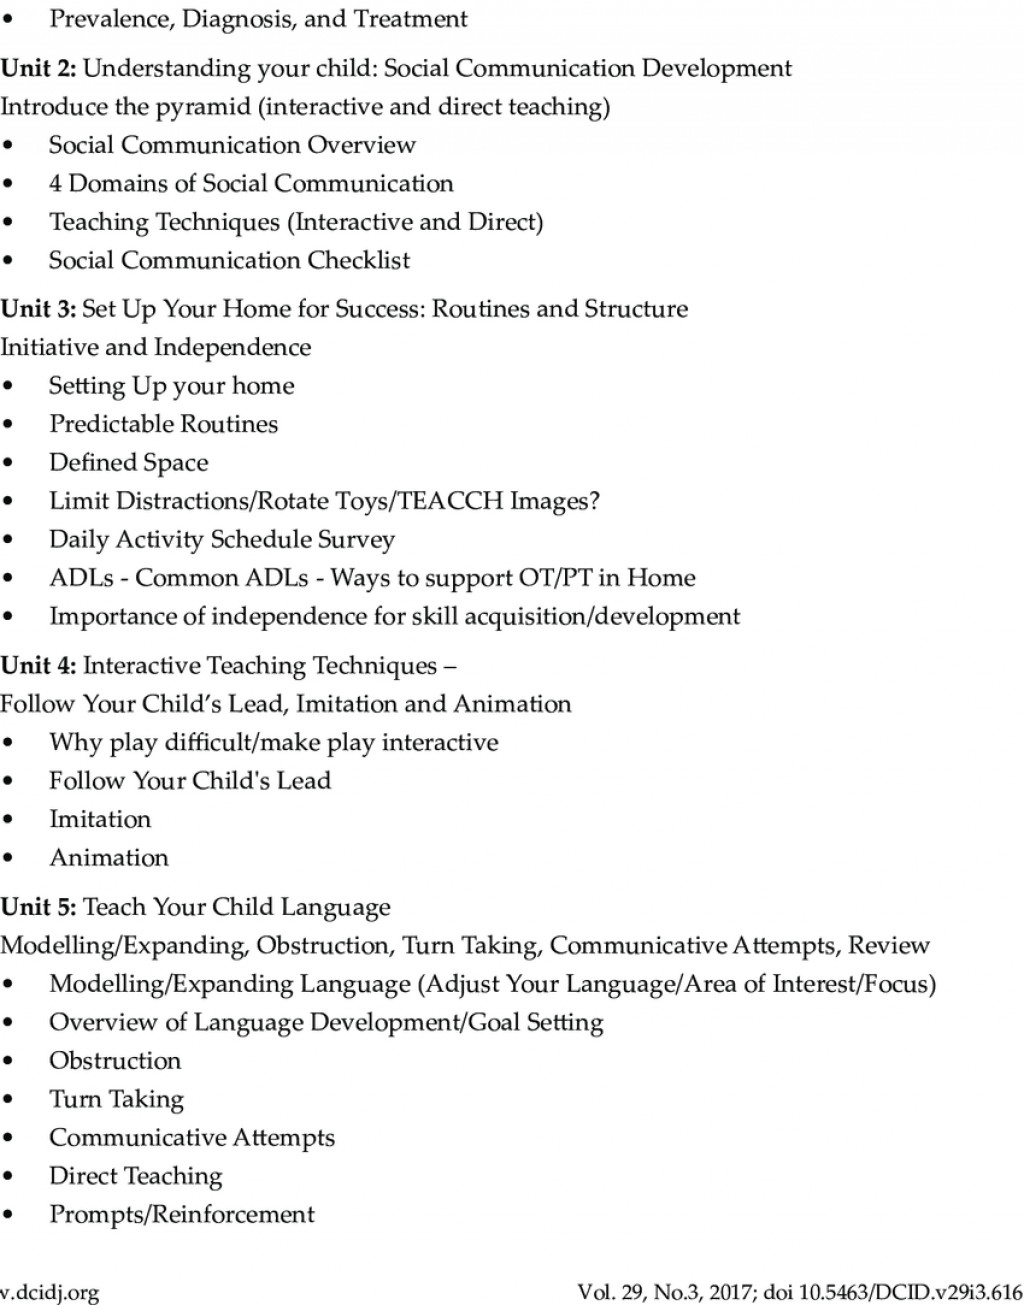 015 Autism Research Paper Outline Of The Bpep Programme Curriculum Unit Introduction To Surprising For Large